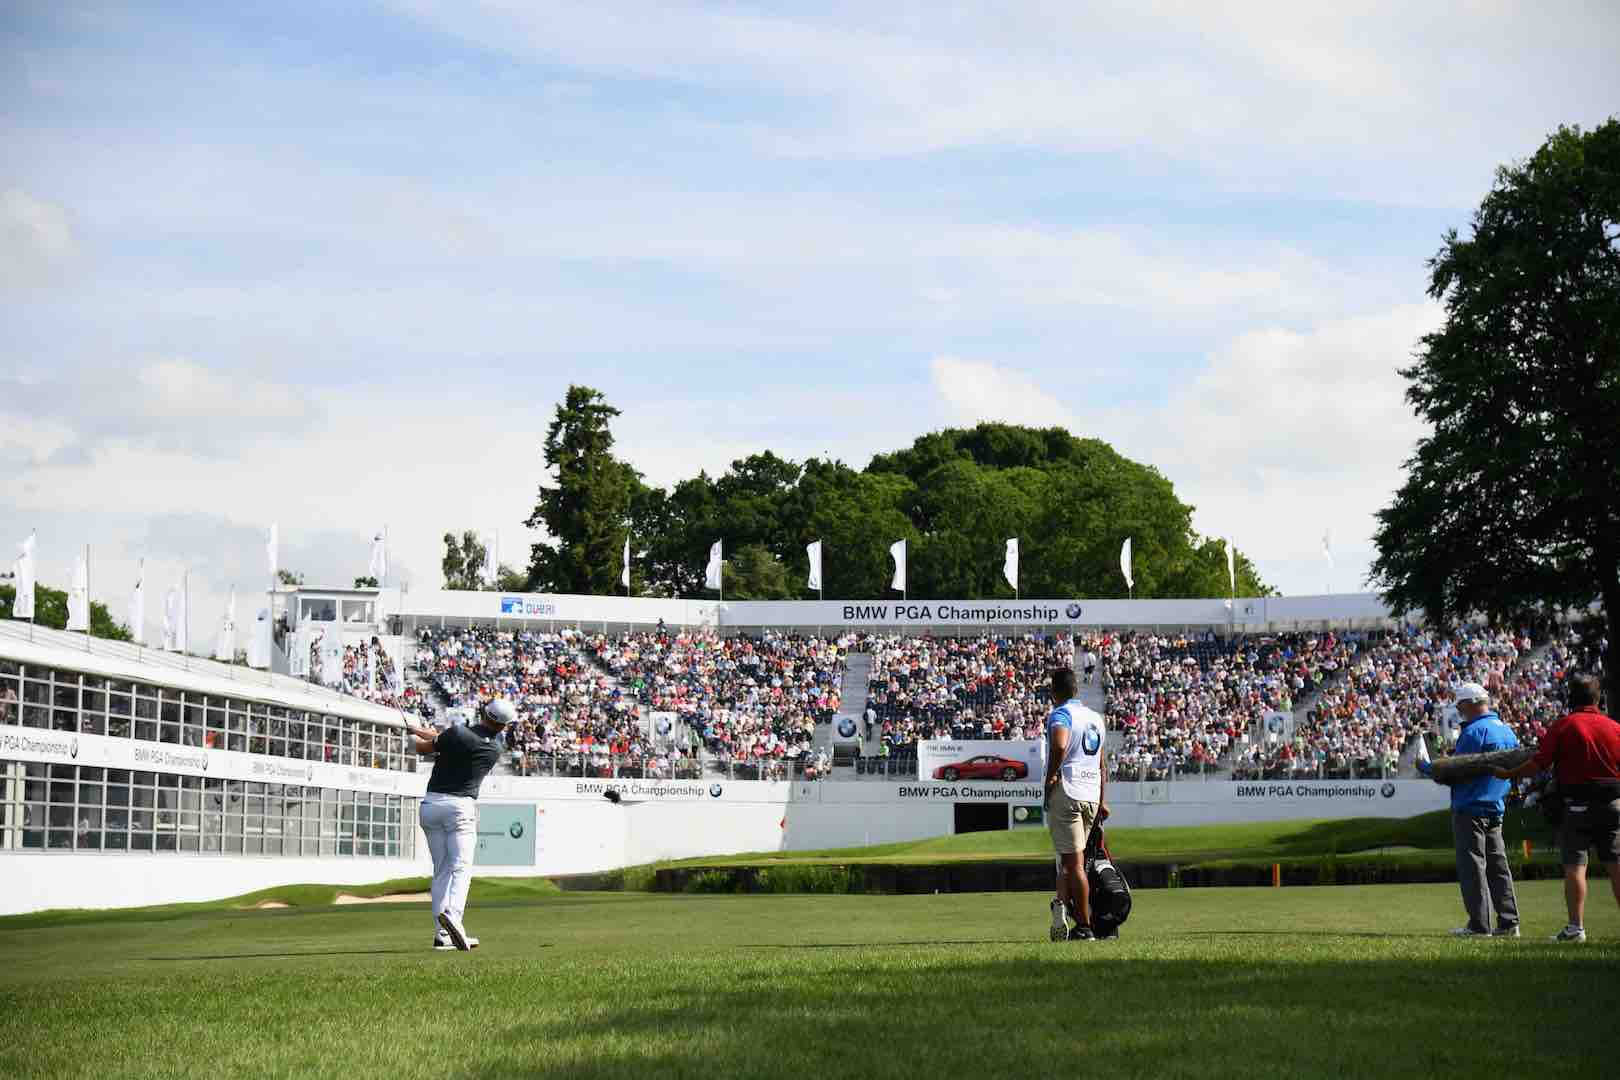 Moving day at the BMW PGA Championship